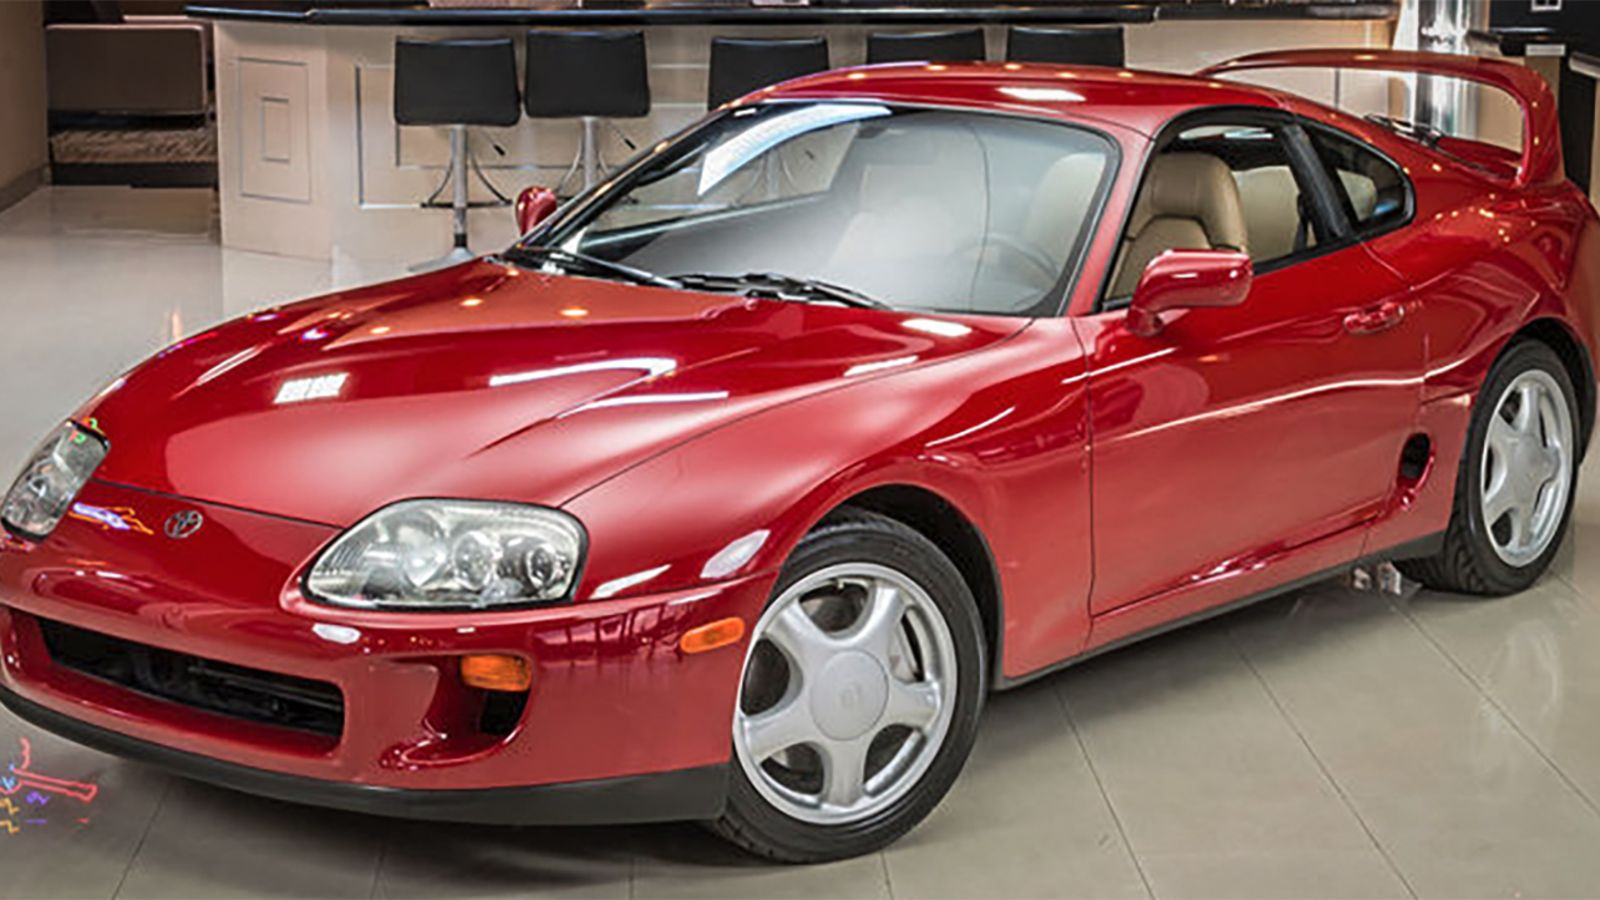 Ten Hilariously Overpriced Cars You Could Buy On eBay Right Now